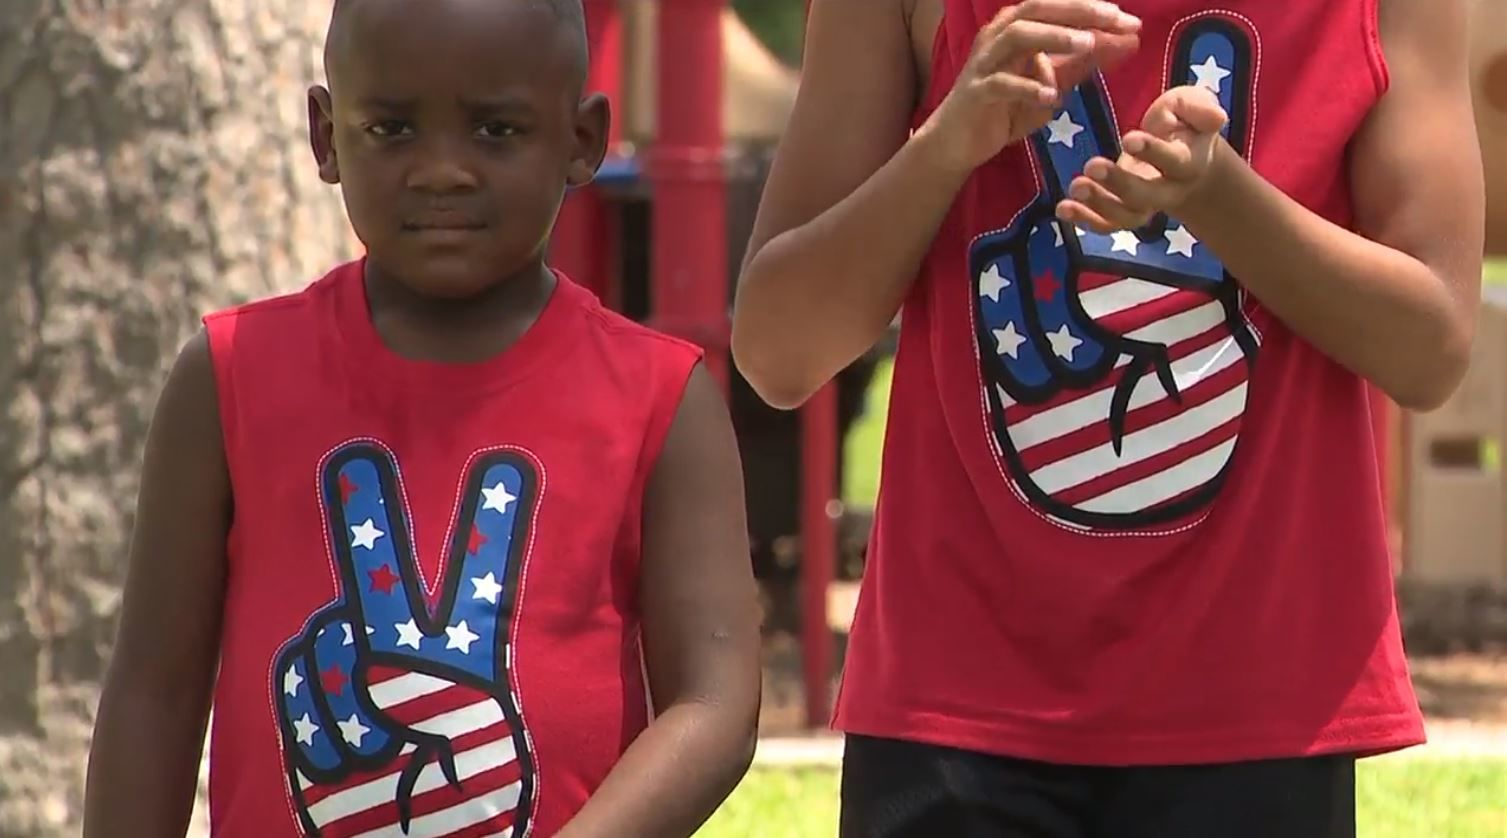 Southeast Texans celebrate Independence Day with optimism amid Covid-19 pandemic